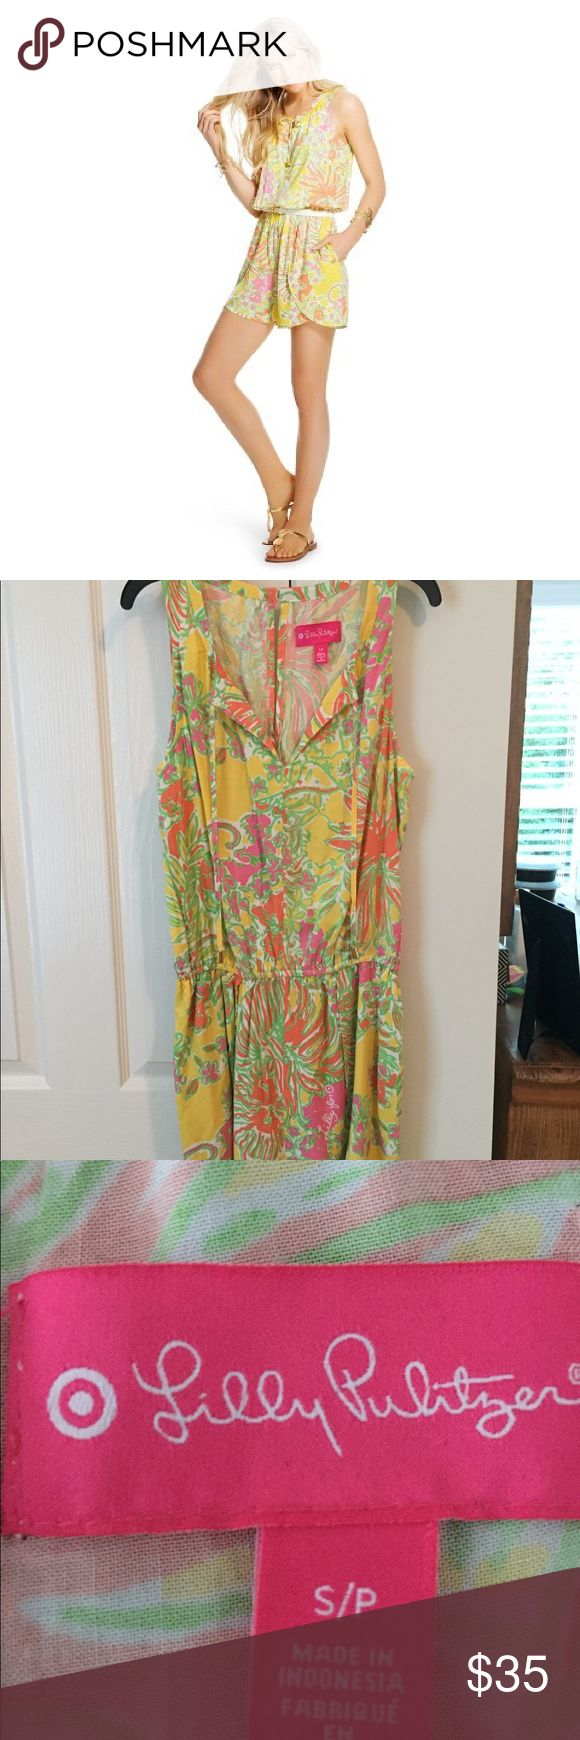 Lily Pulitzer by target romper Worn only once-too big for me LIMITED EDITION Lilly Pulitzer for Target Other